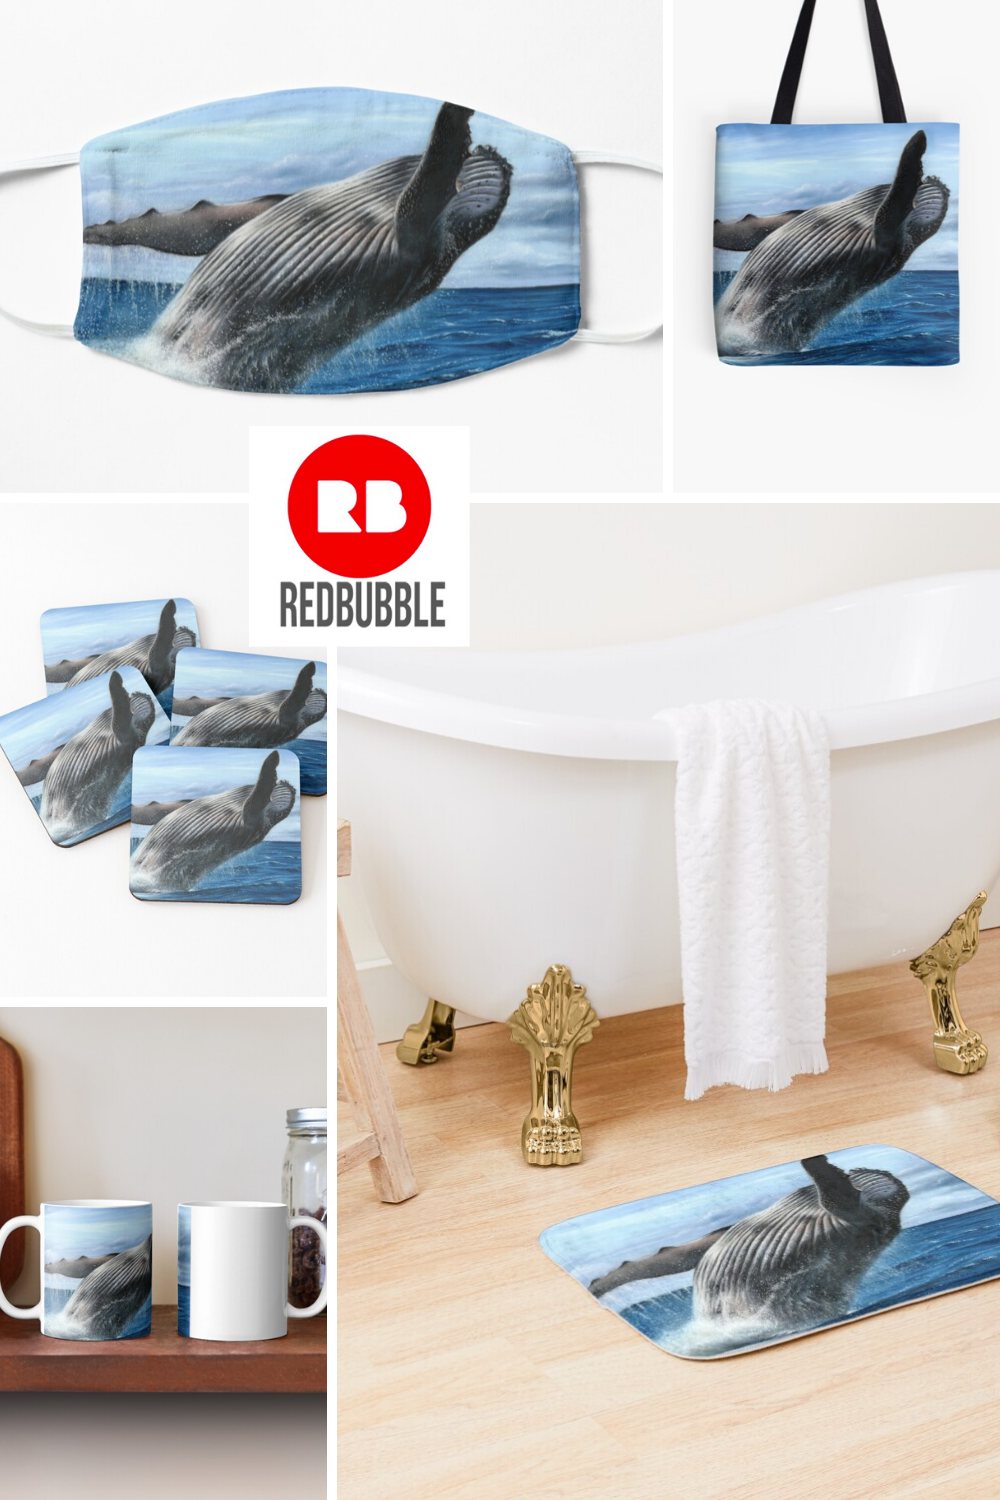 Humpback Whale pastel artwork available on a variety of products from Redbubble. #redbubble #whale #humpbackwhale #artforsale #artprints